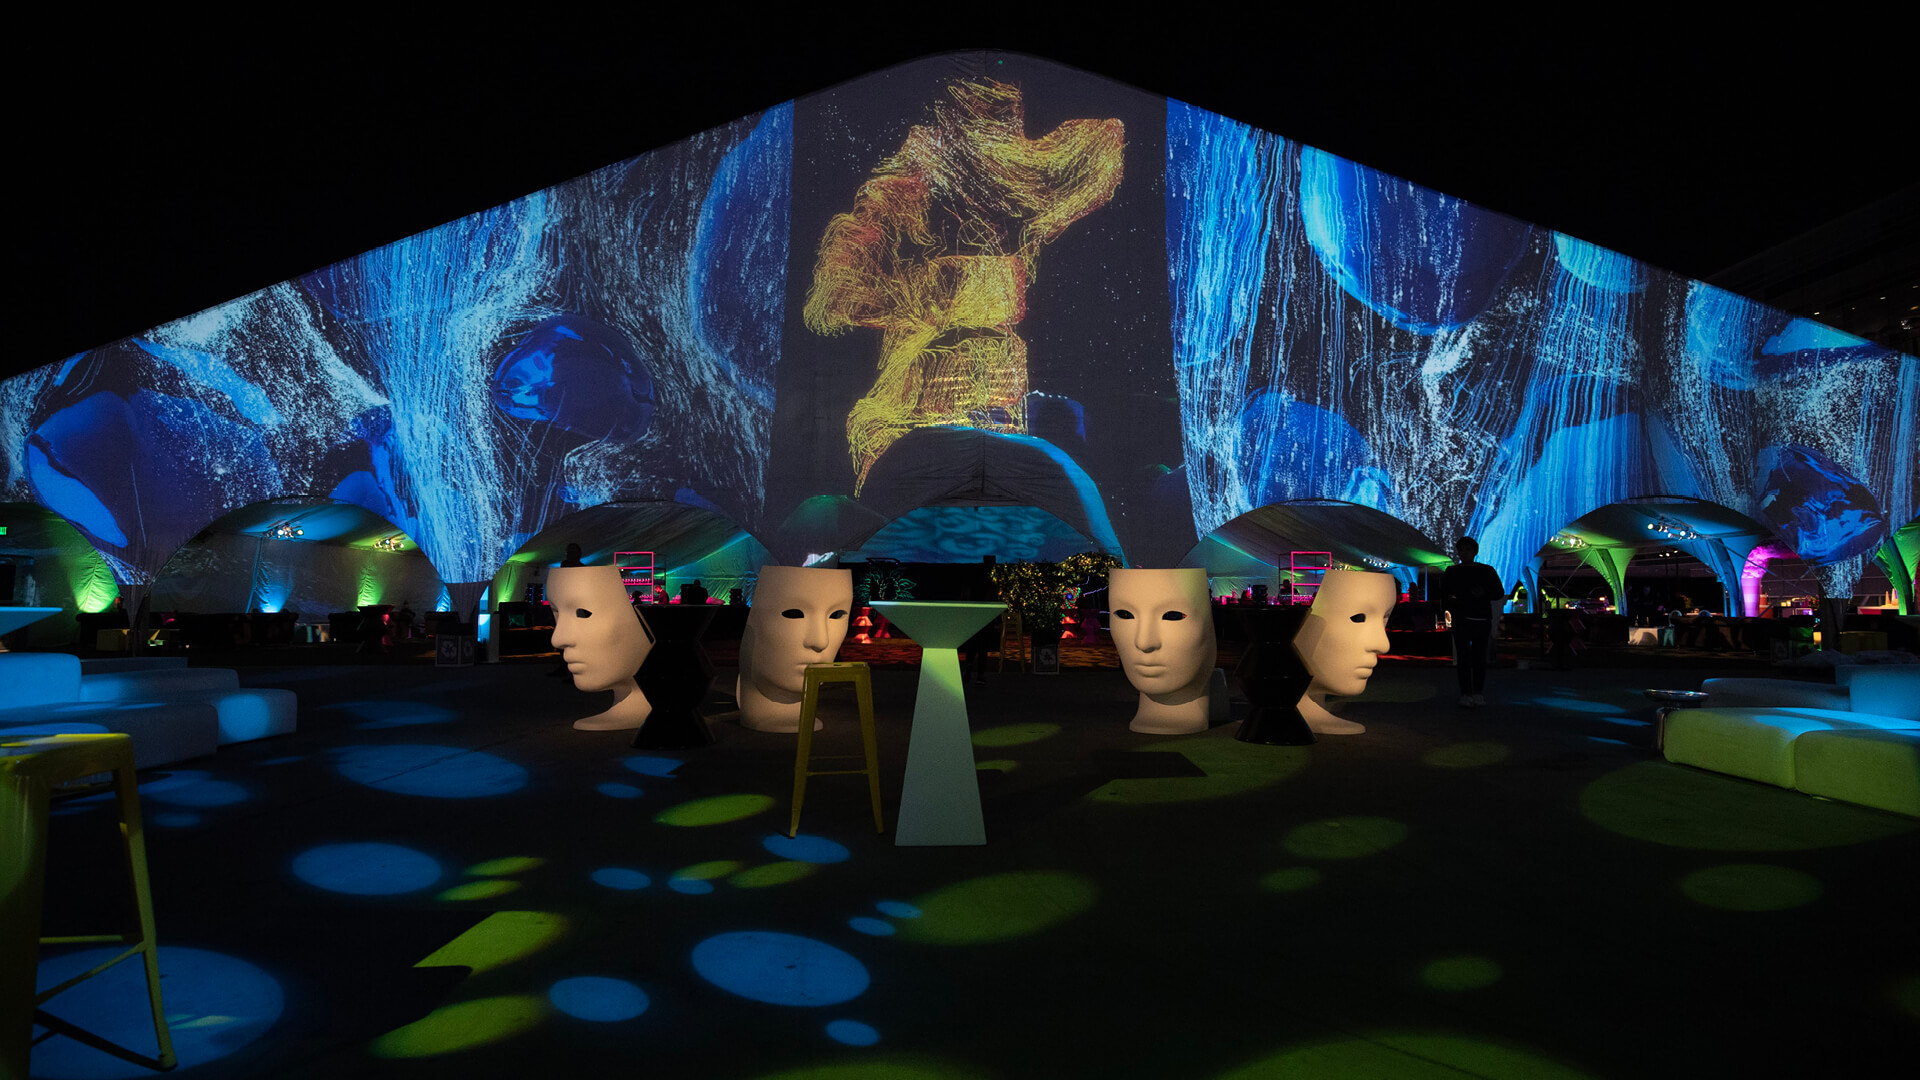 The Boundary by Takuma Nakata at Adobe MAX Los Angeles | The Boundary | Takuma Nakata | STIRworld